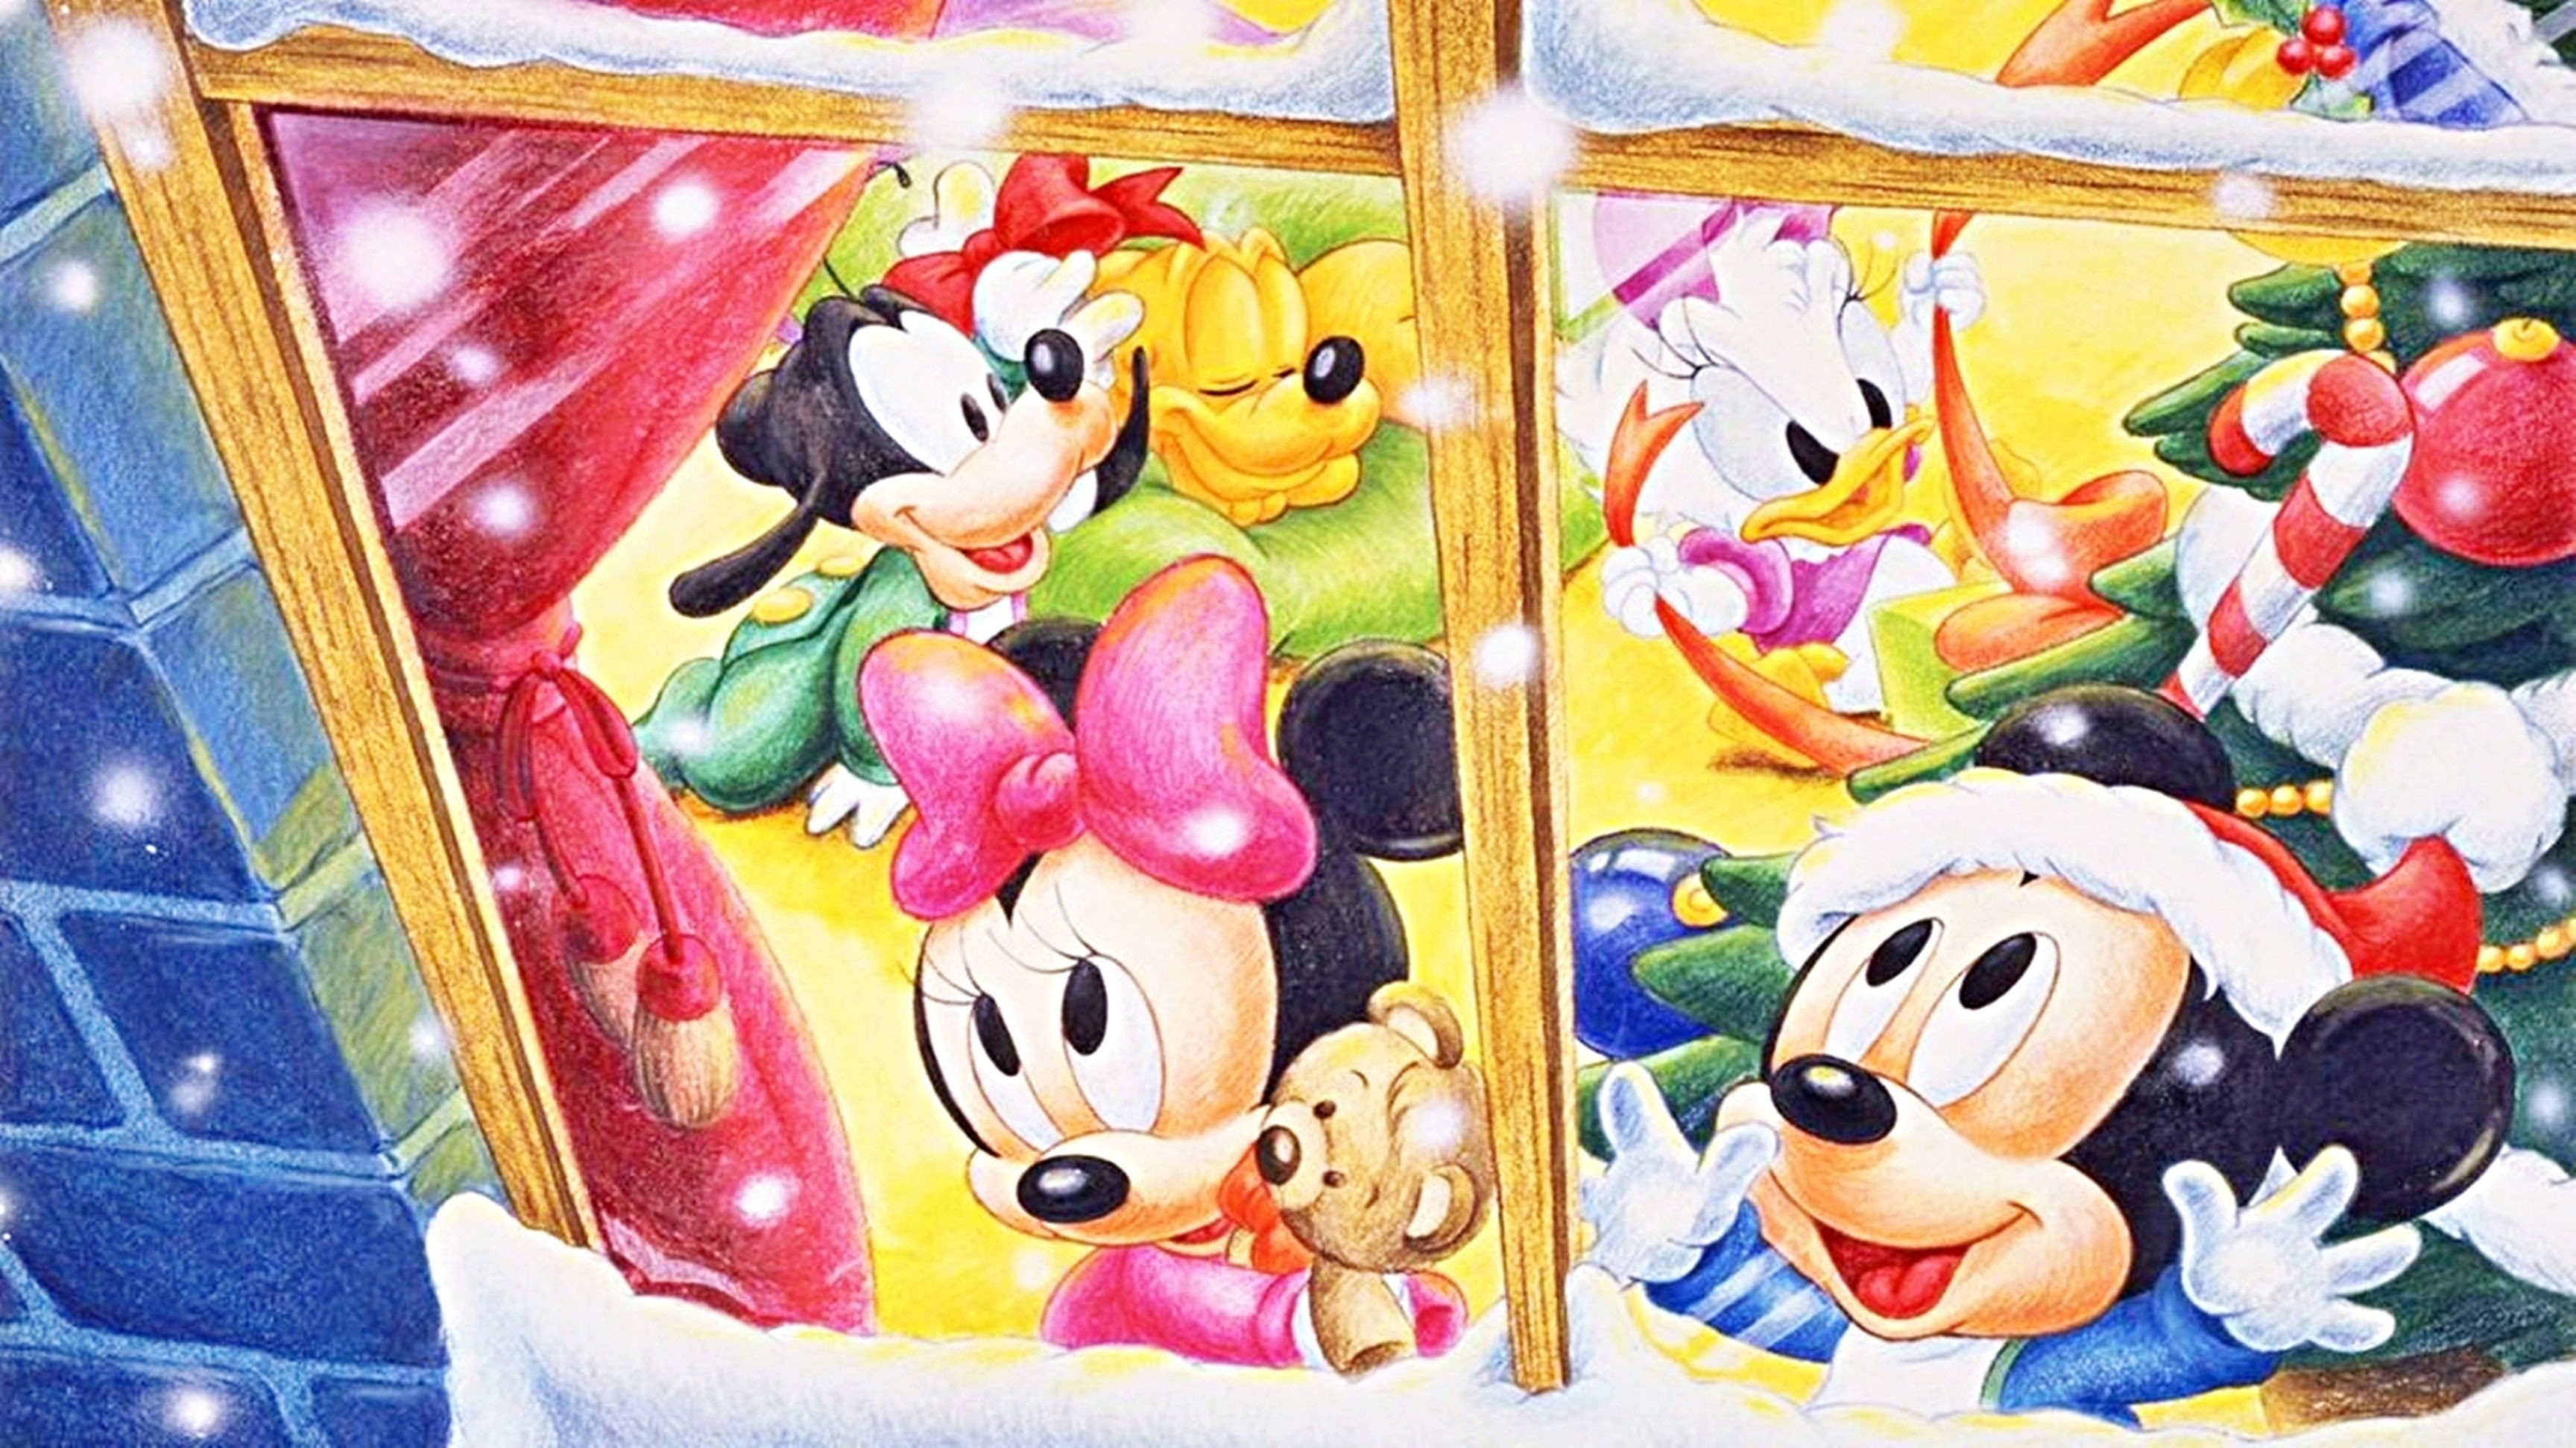 Res: 3456x1943, christmas, walt, disney, characters, high, resolution, wallpaper, for,